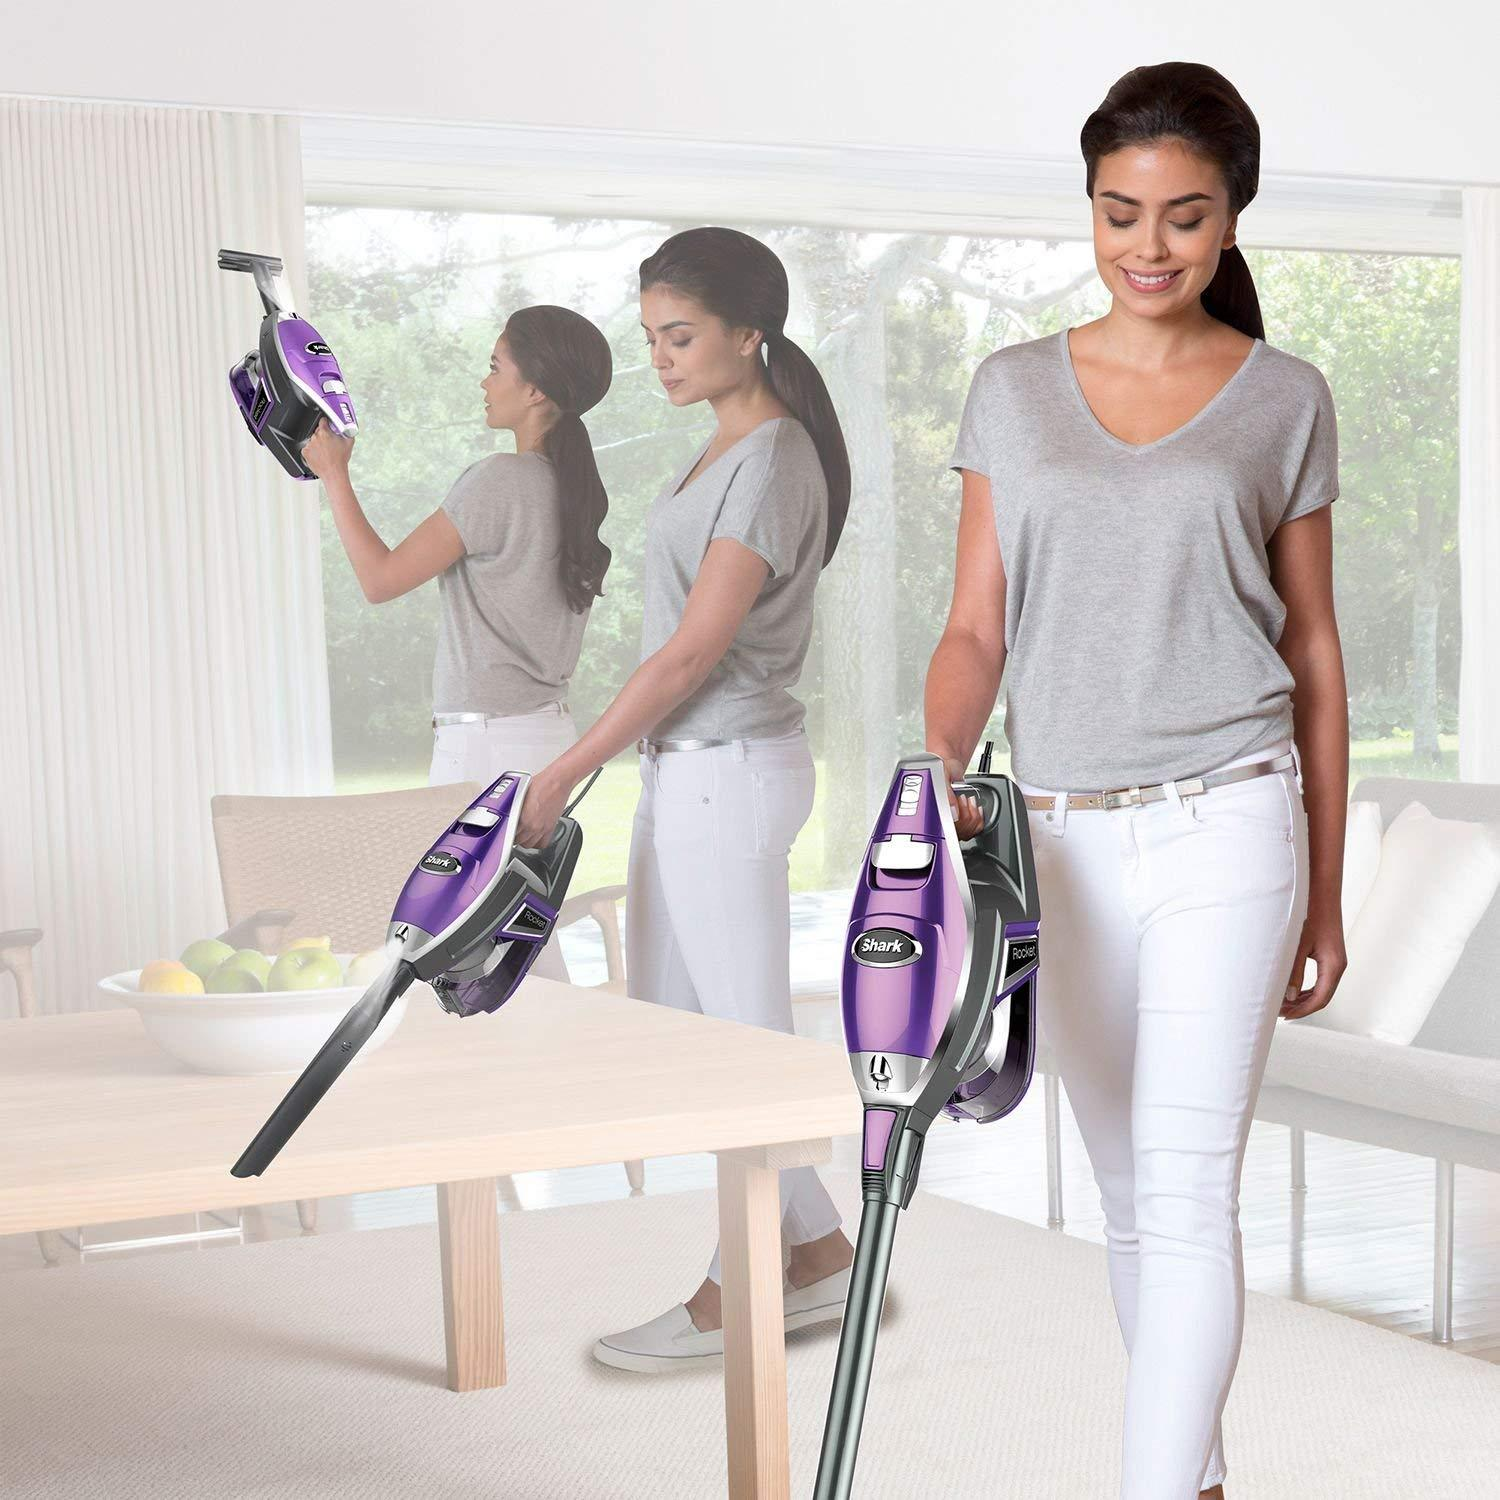 Shark UV422 Rocket Deluxe Pro Ultra-Light Upright Stick Vacuum (Renewed)